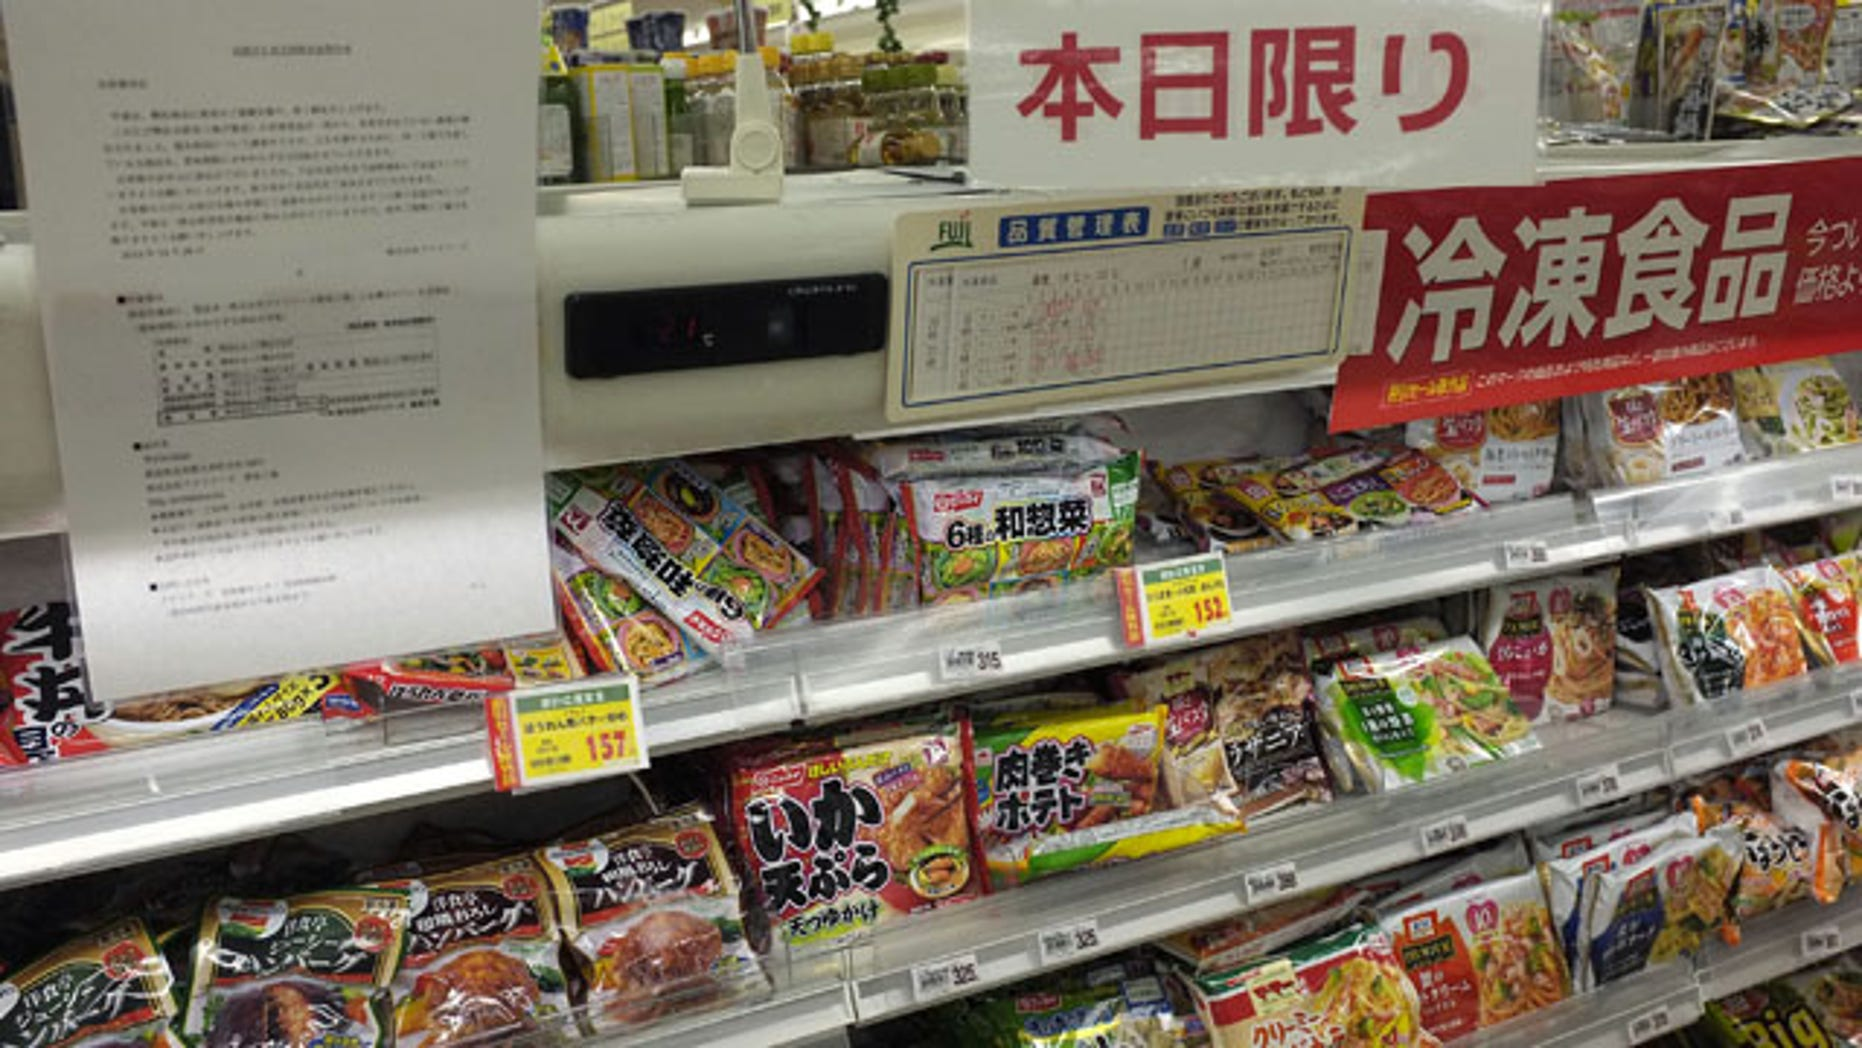 January 7, 2014: A notice of apology and recall is placed on the shelves of frozen food products at a supermarket in Fujisawa, near Tokyo. (AP)